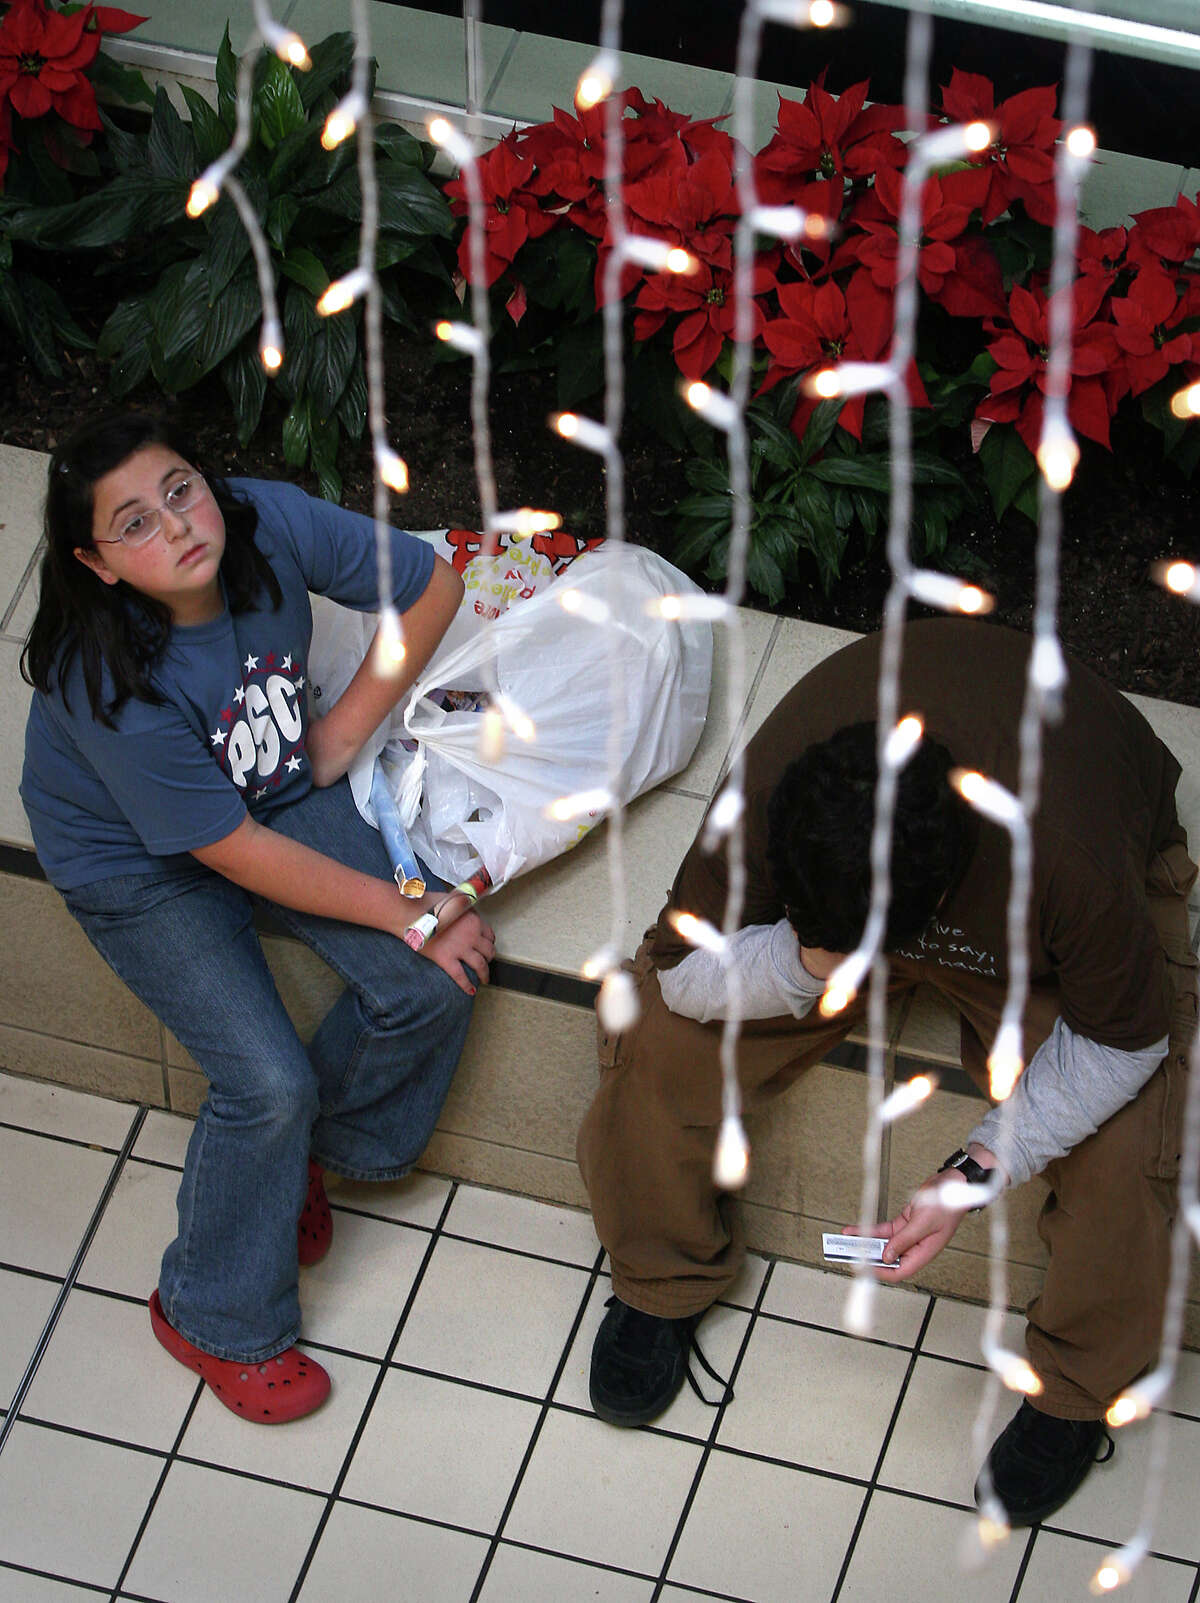 Ingram Park Mall: Open 8 p.m. Thanksgiving Day to 9 p.m. Black Friday; www.simon.com/mall/ingram-park-mall